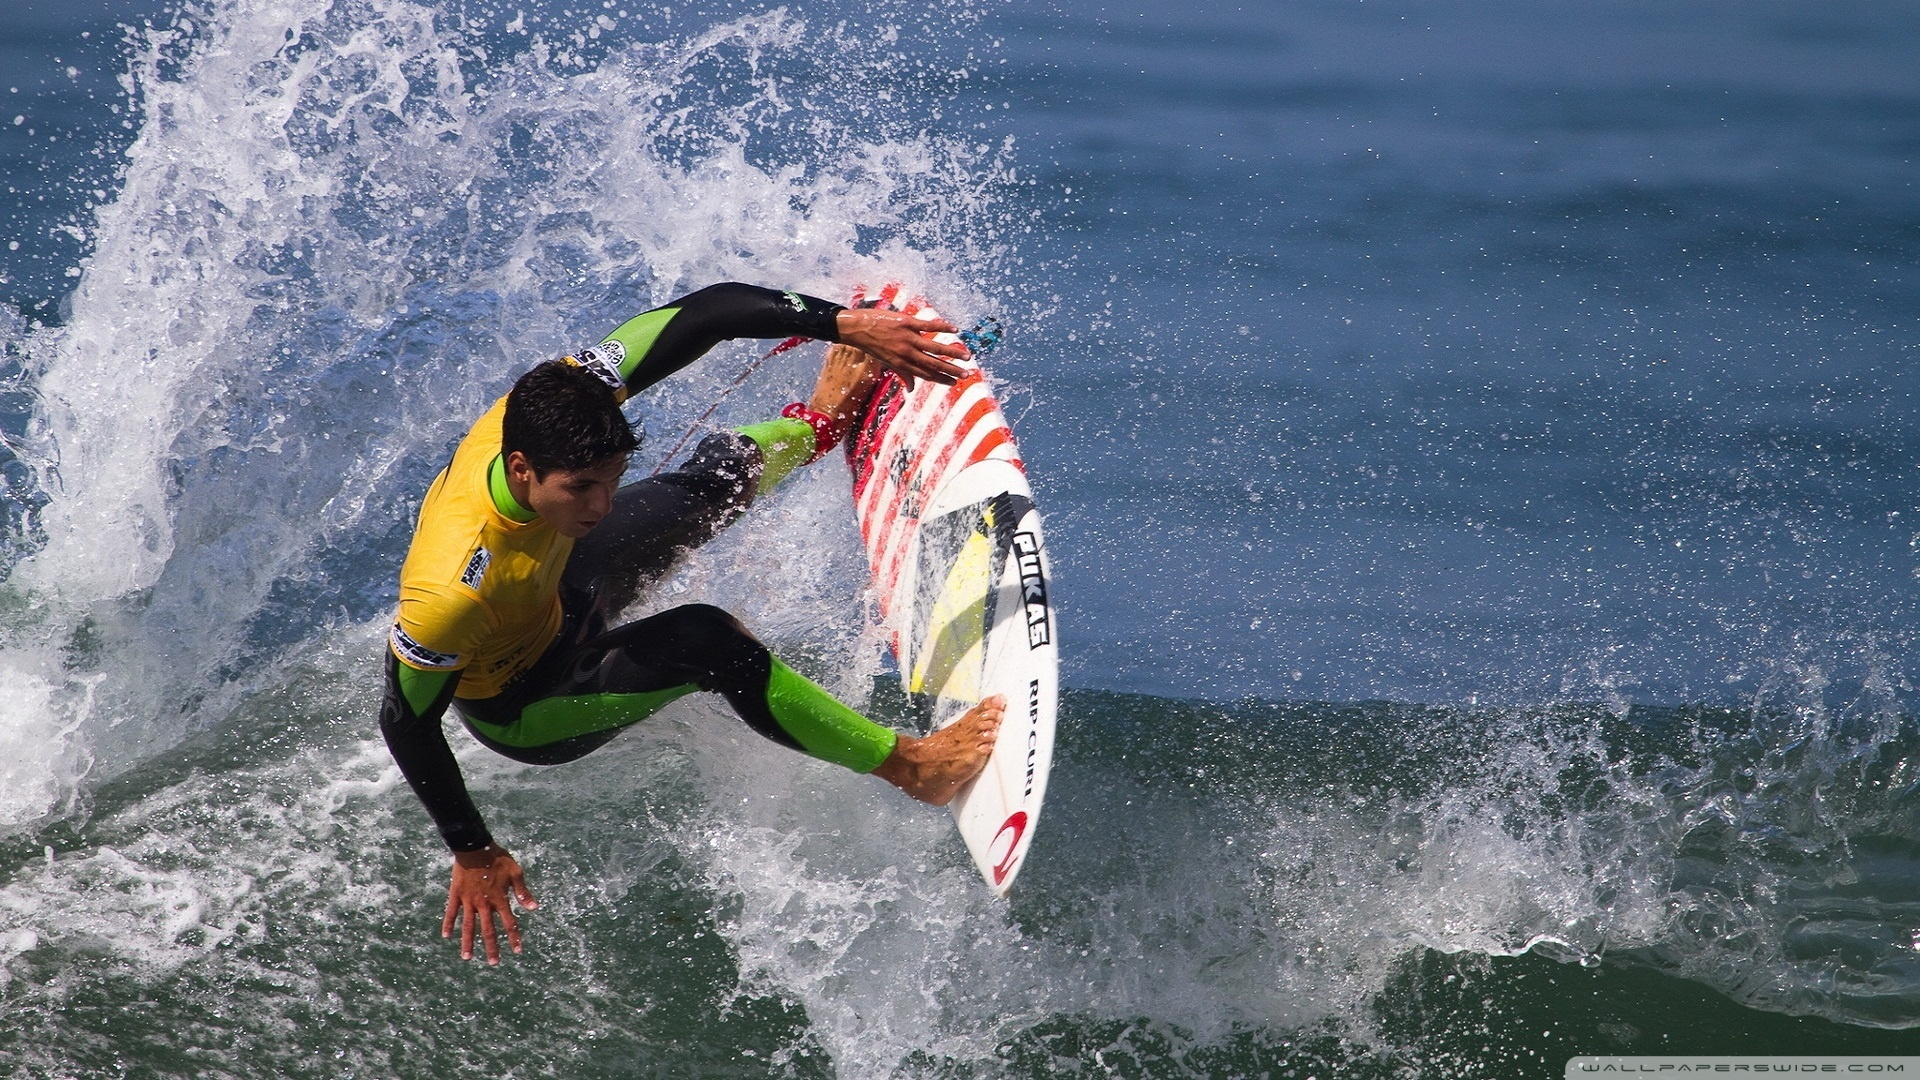 Surfer Riding The Wawe 1920x1080 HD Wallpaper Sport Surfing Water 1920x1080